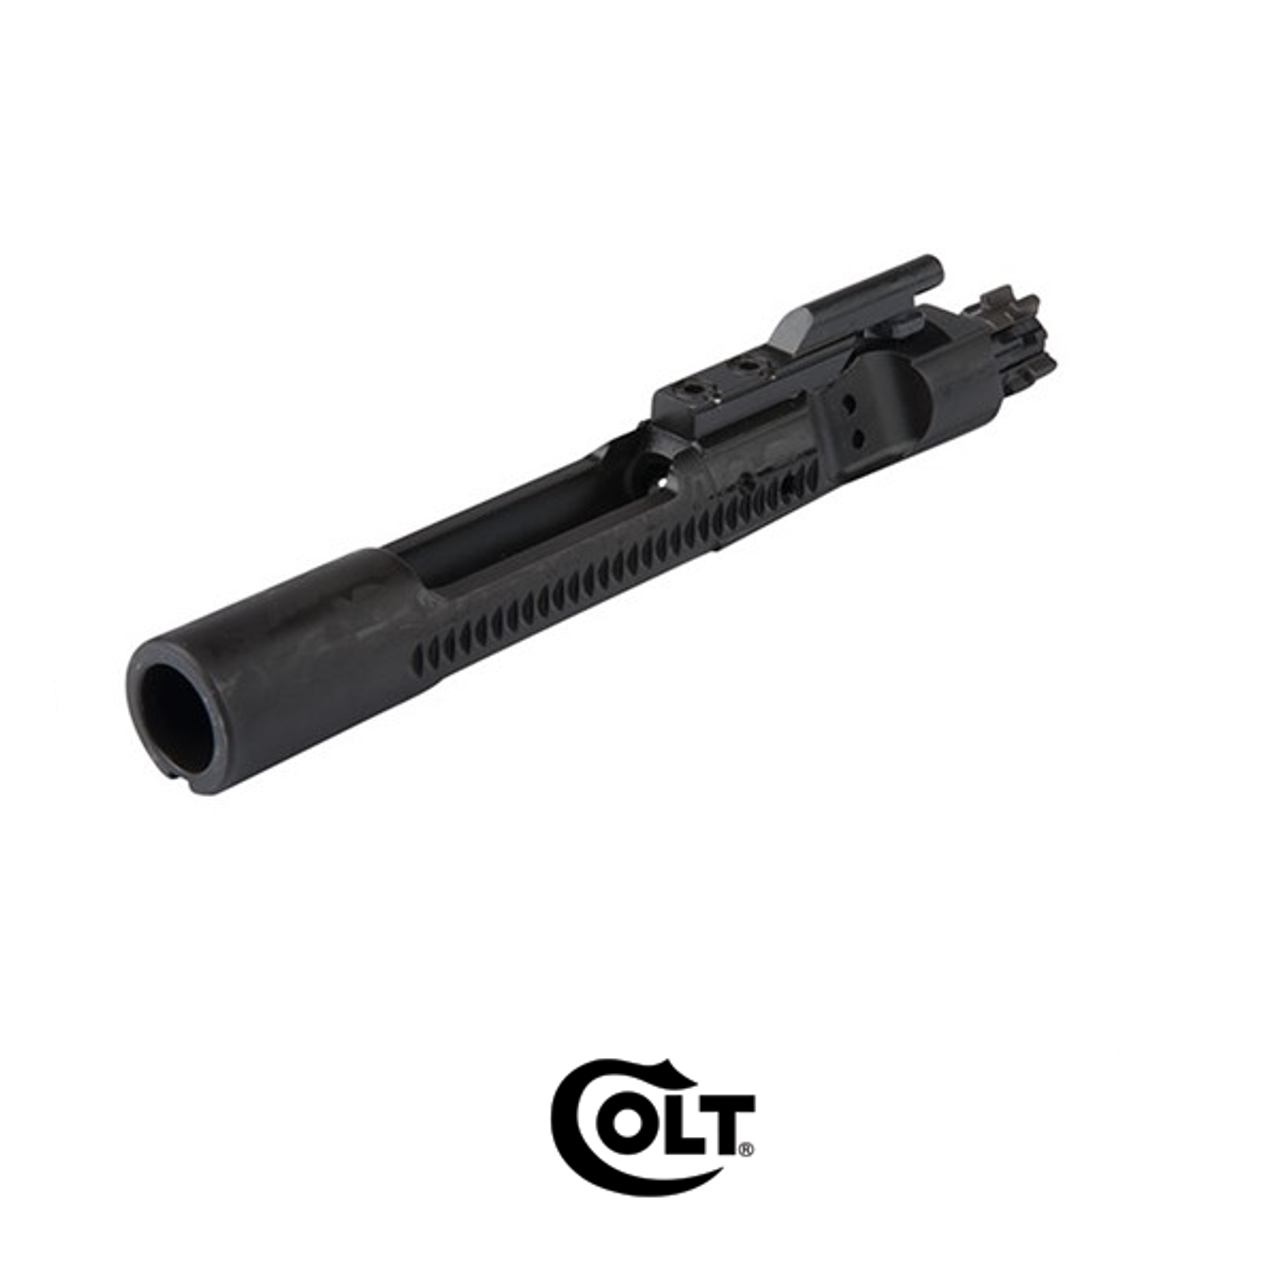 COLT M16 5 56 BOLT CARRIER GROUP